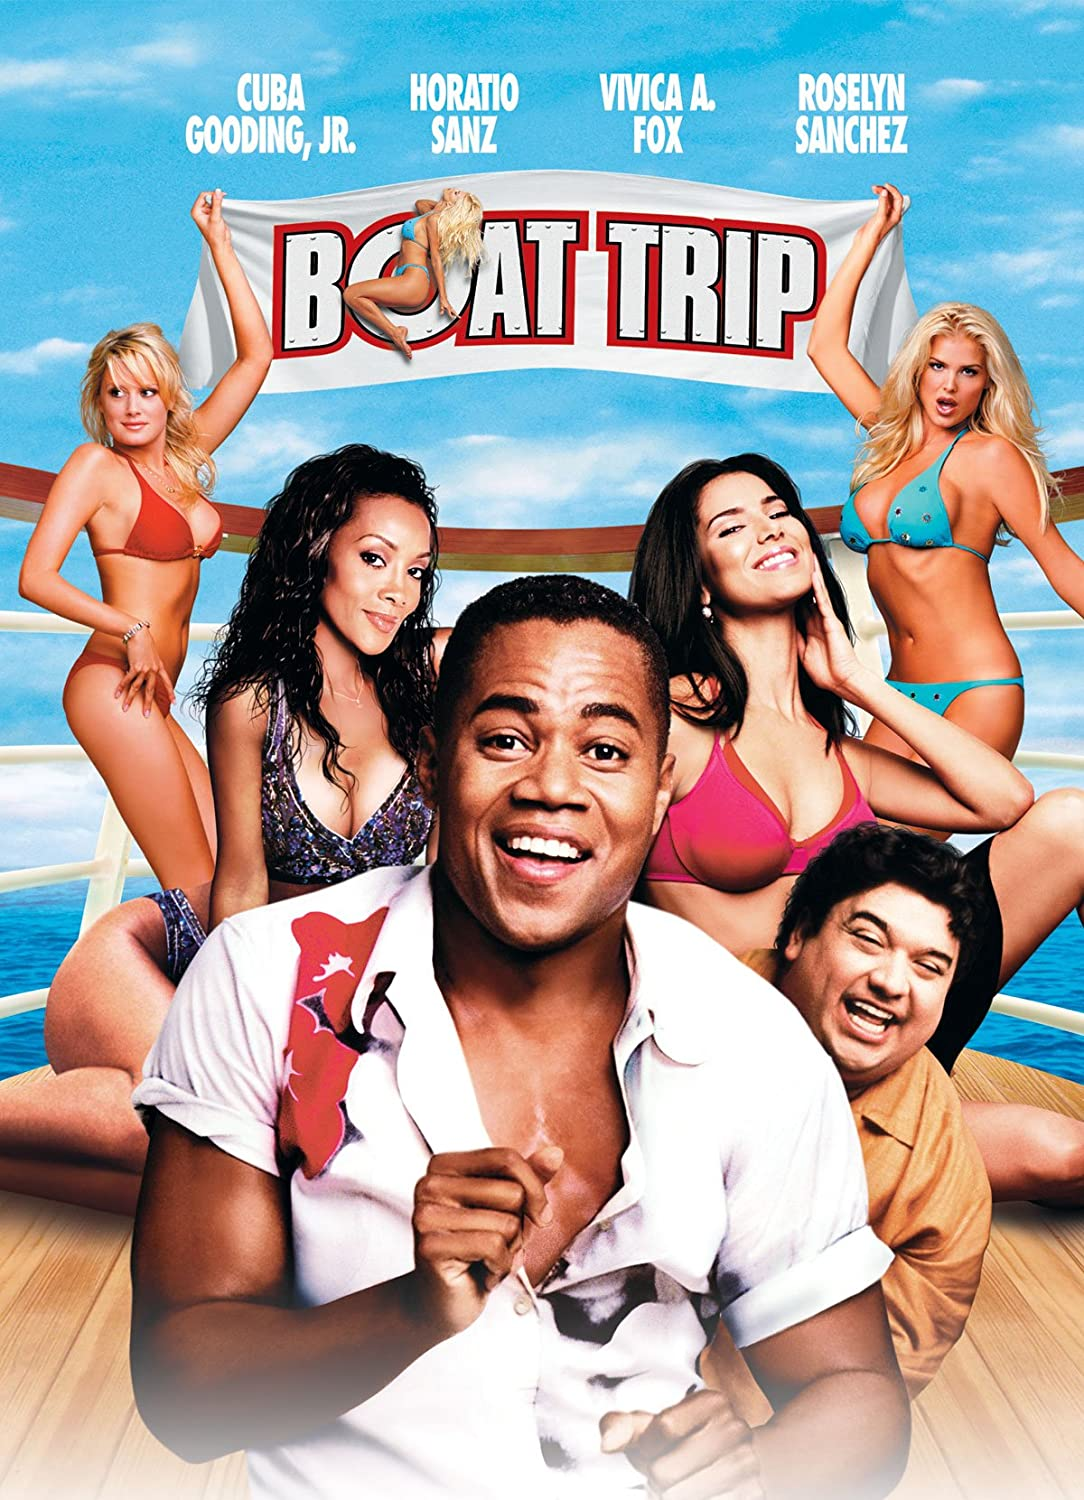 18+ Boat Trip 2002 English HDRip 720p Download